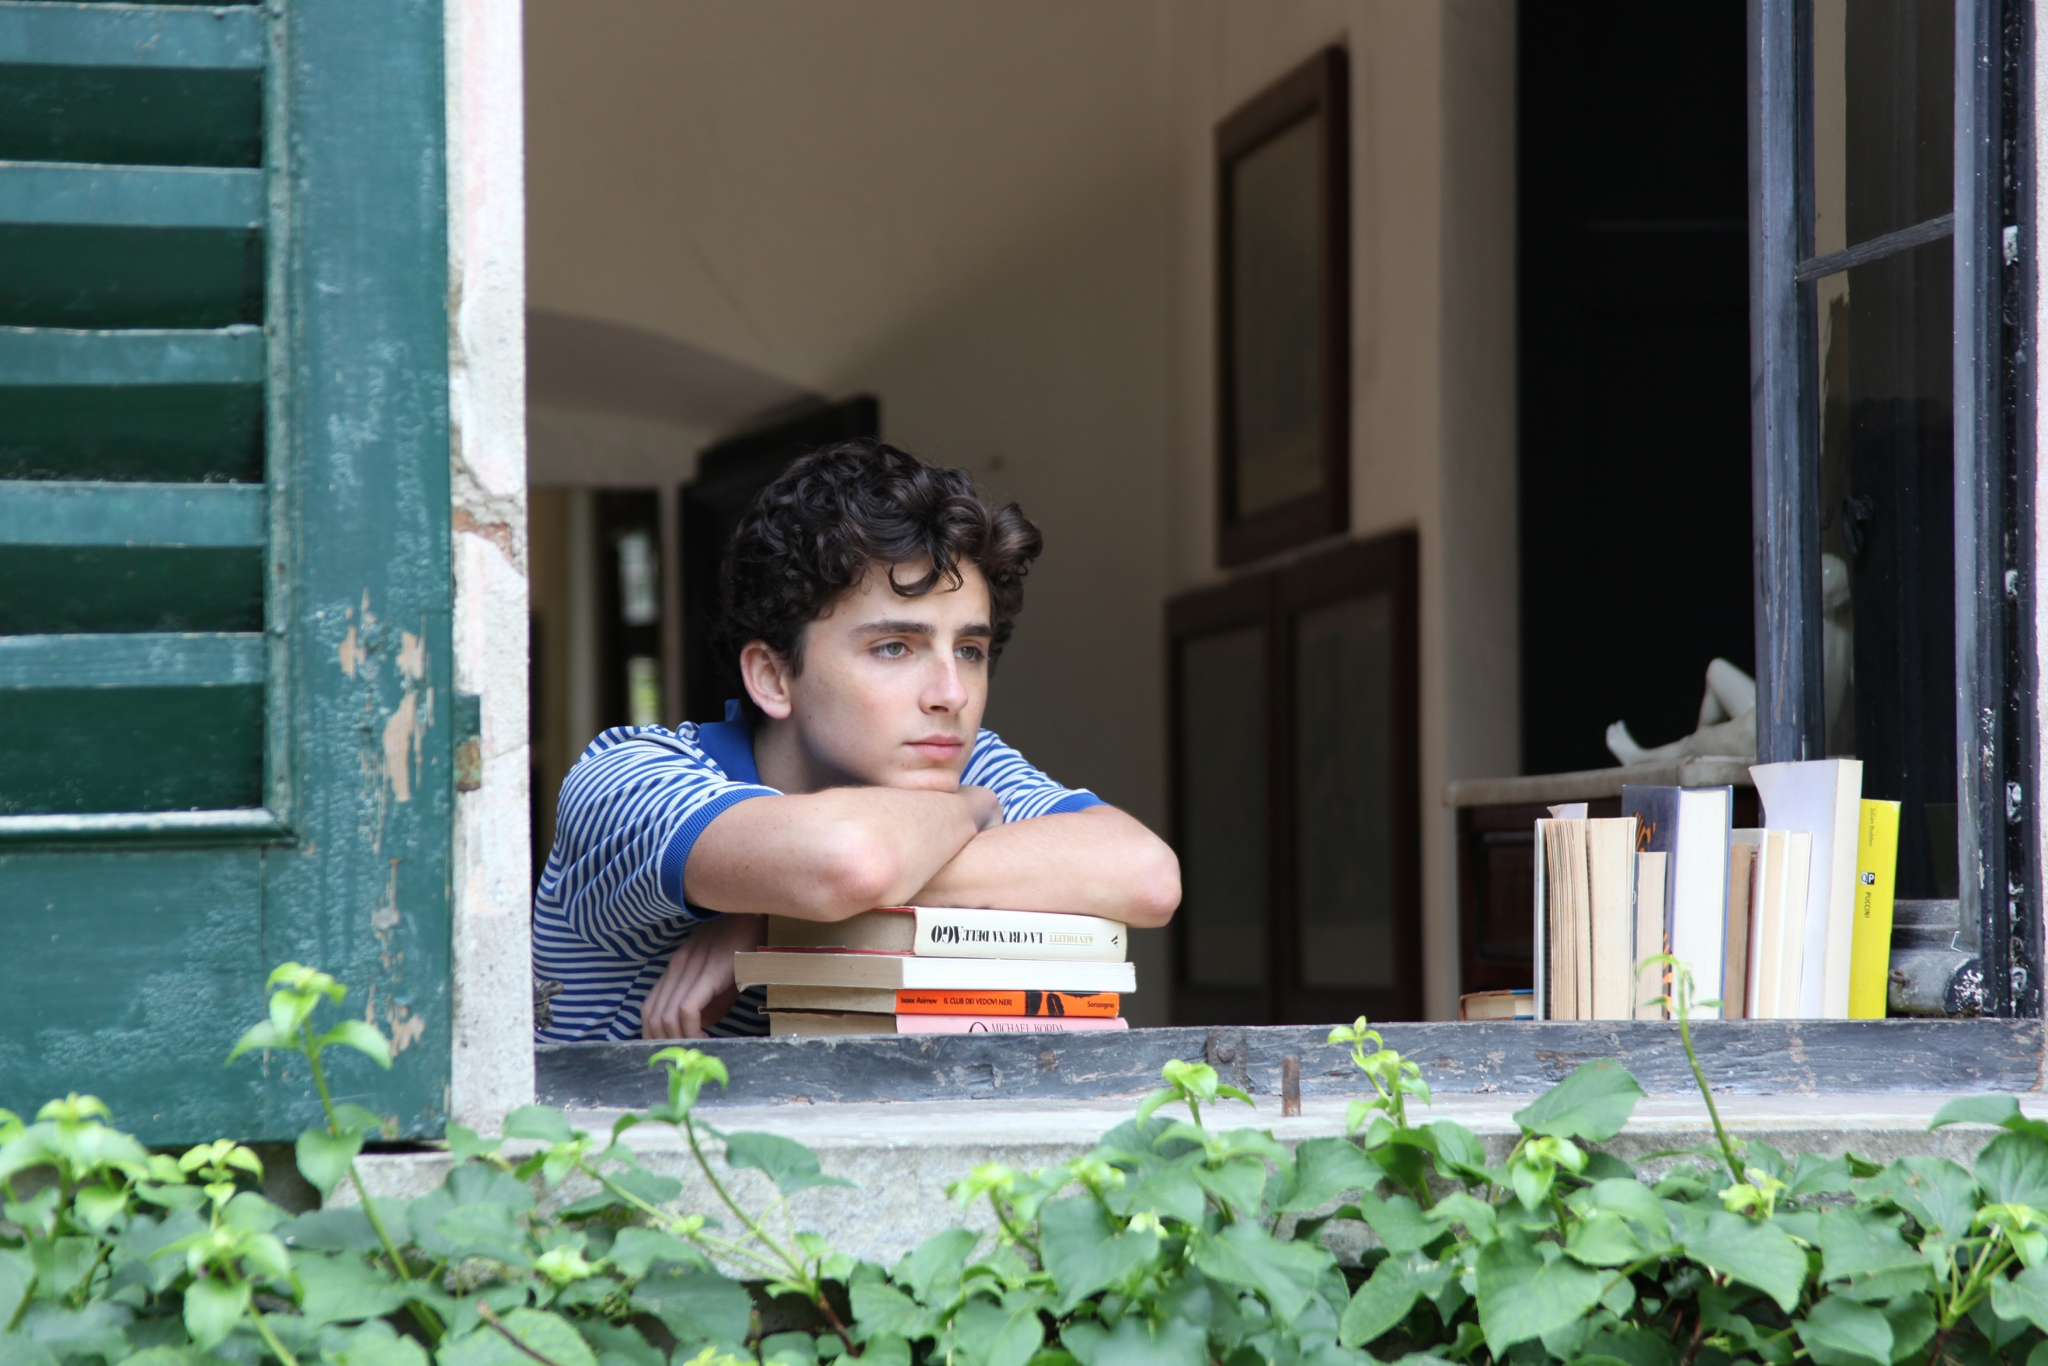 Seventeen-year-old Elio (Timothée Chalamet) is in the process of exploring his sexual identity.